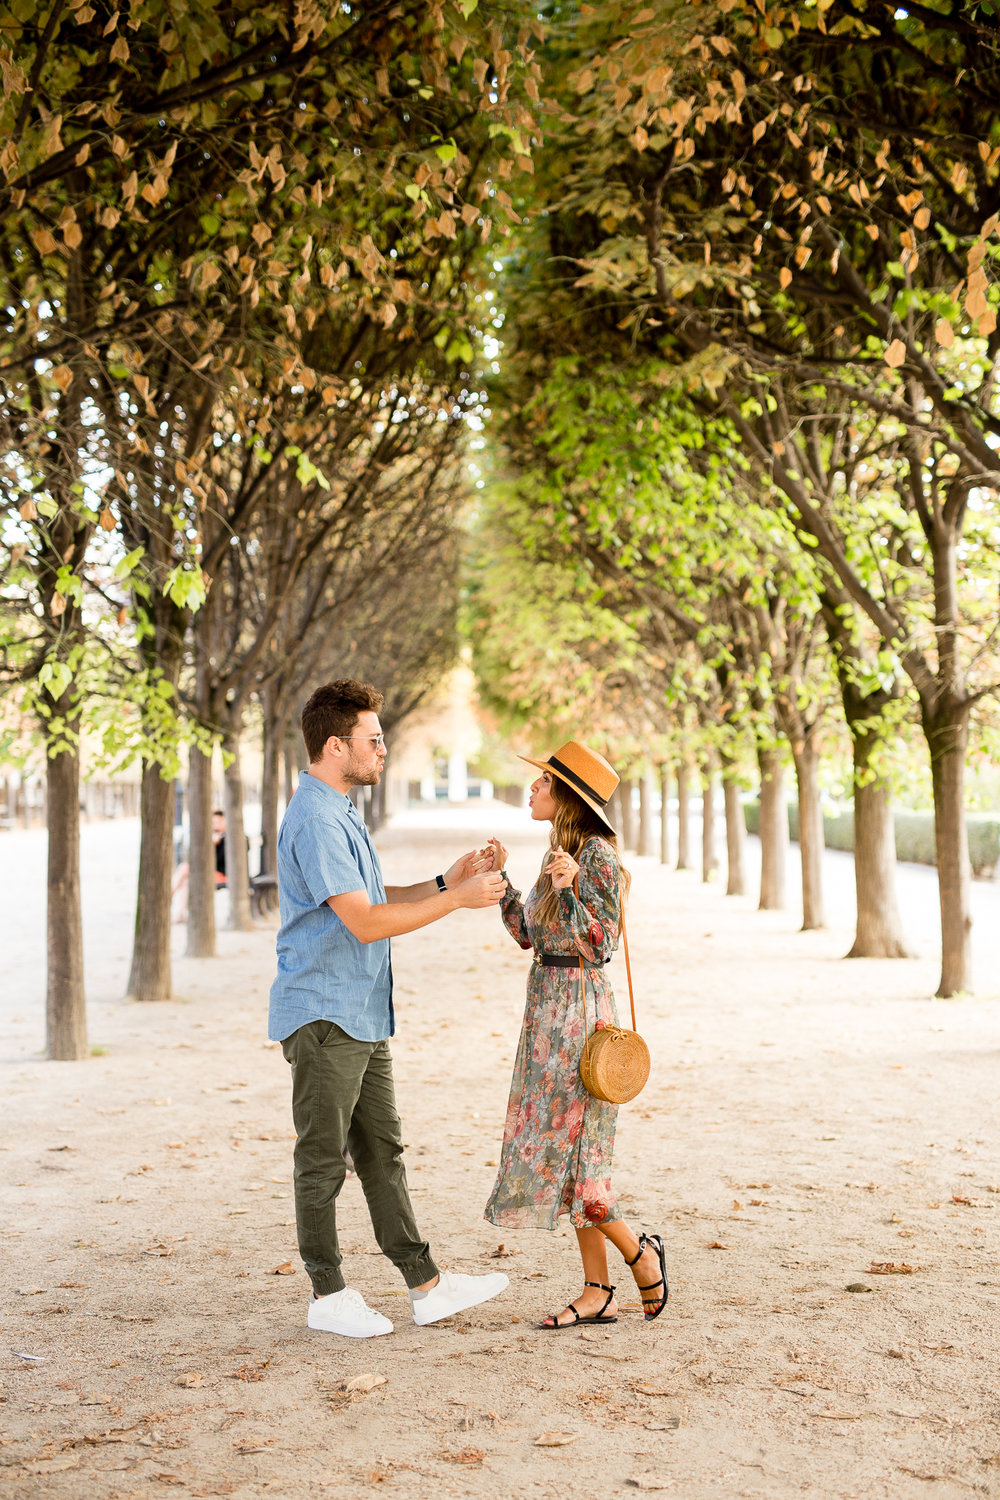 what-to-wear-for-a-casual-couple-photo-session-in-paris_003.jpg